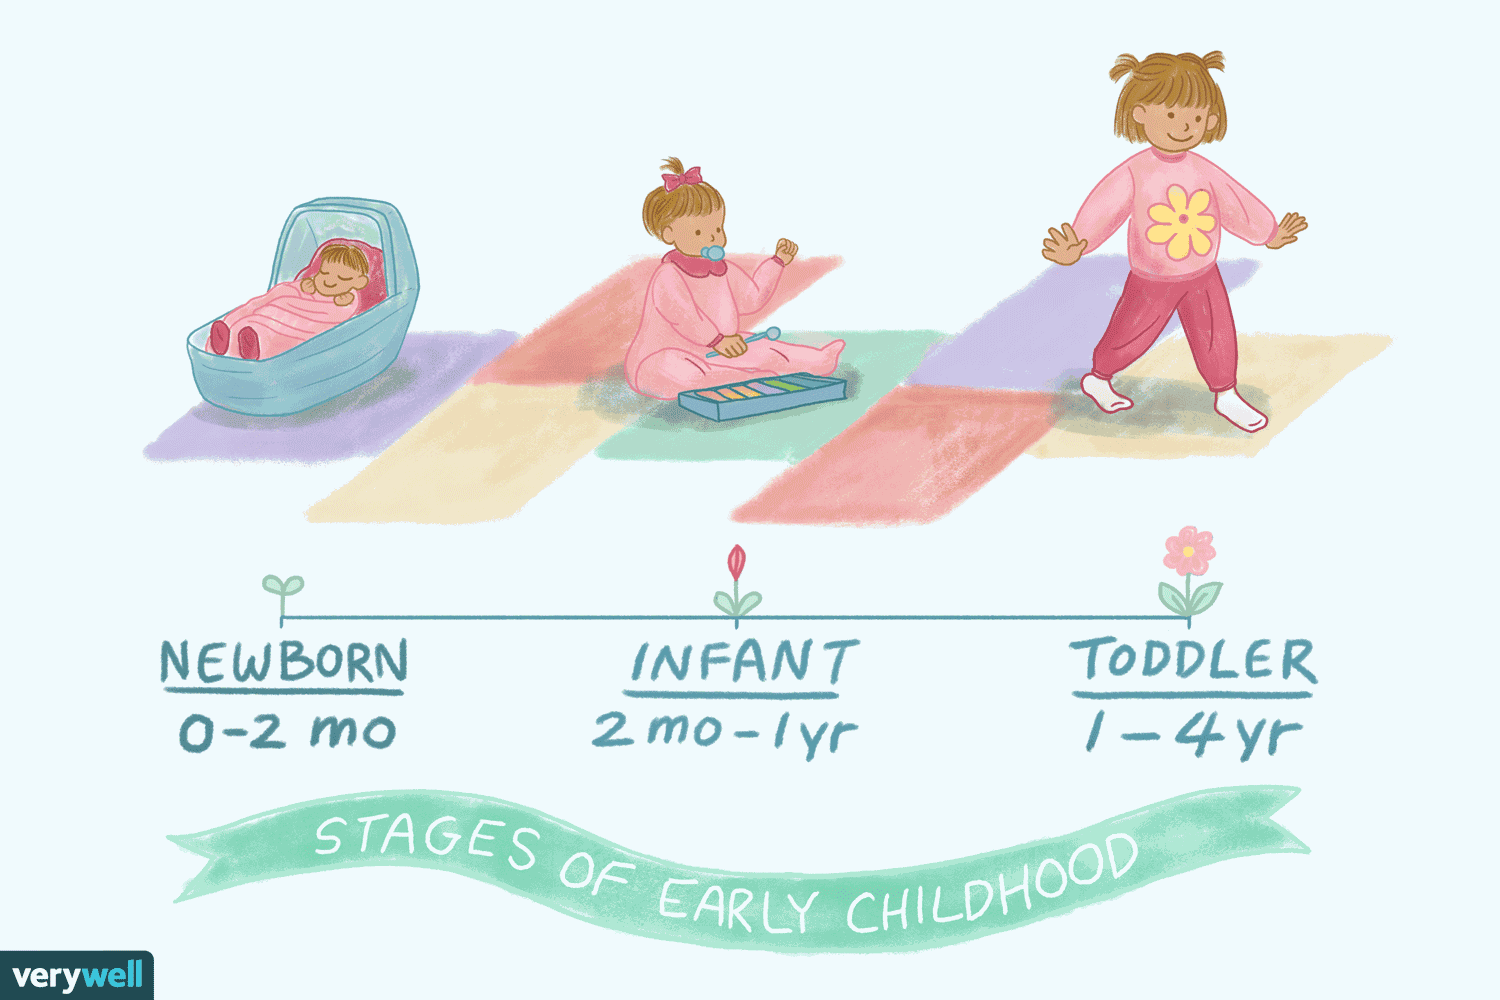 baby  newborn  infant  and toddler definitions